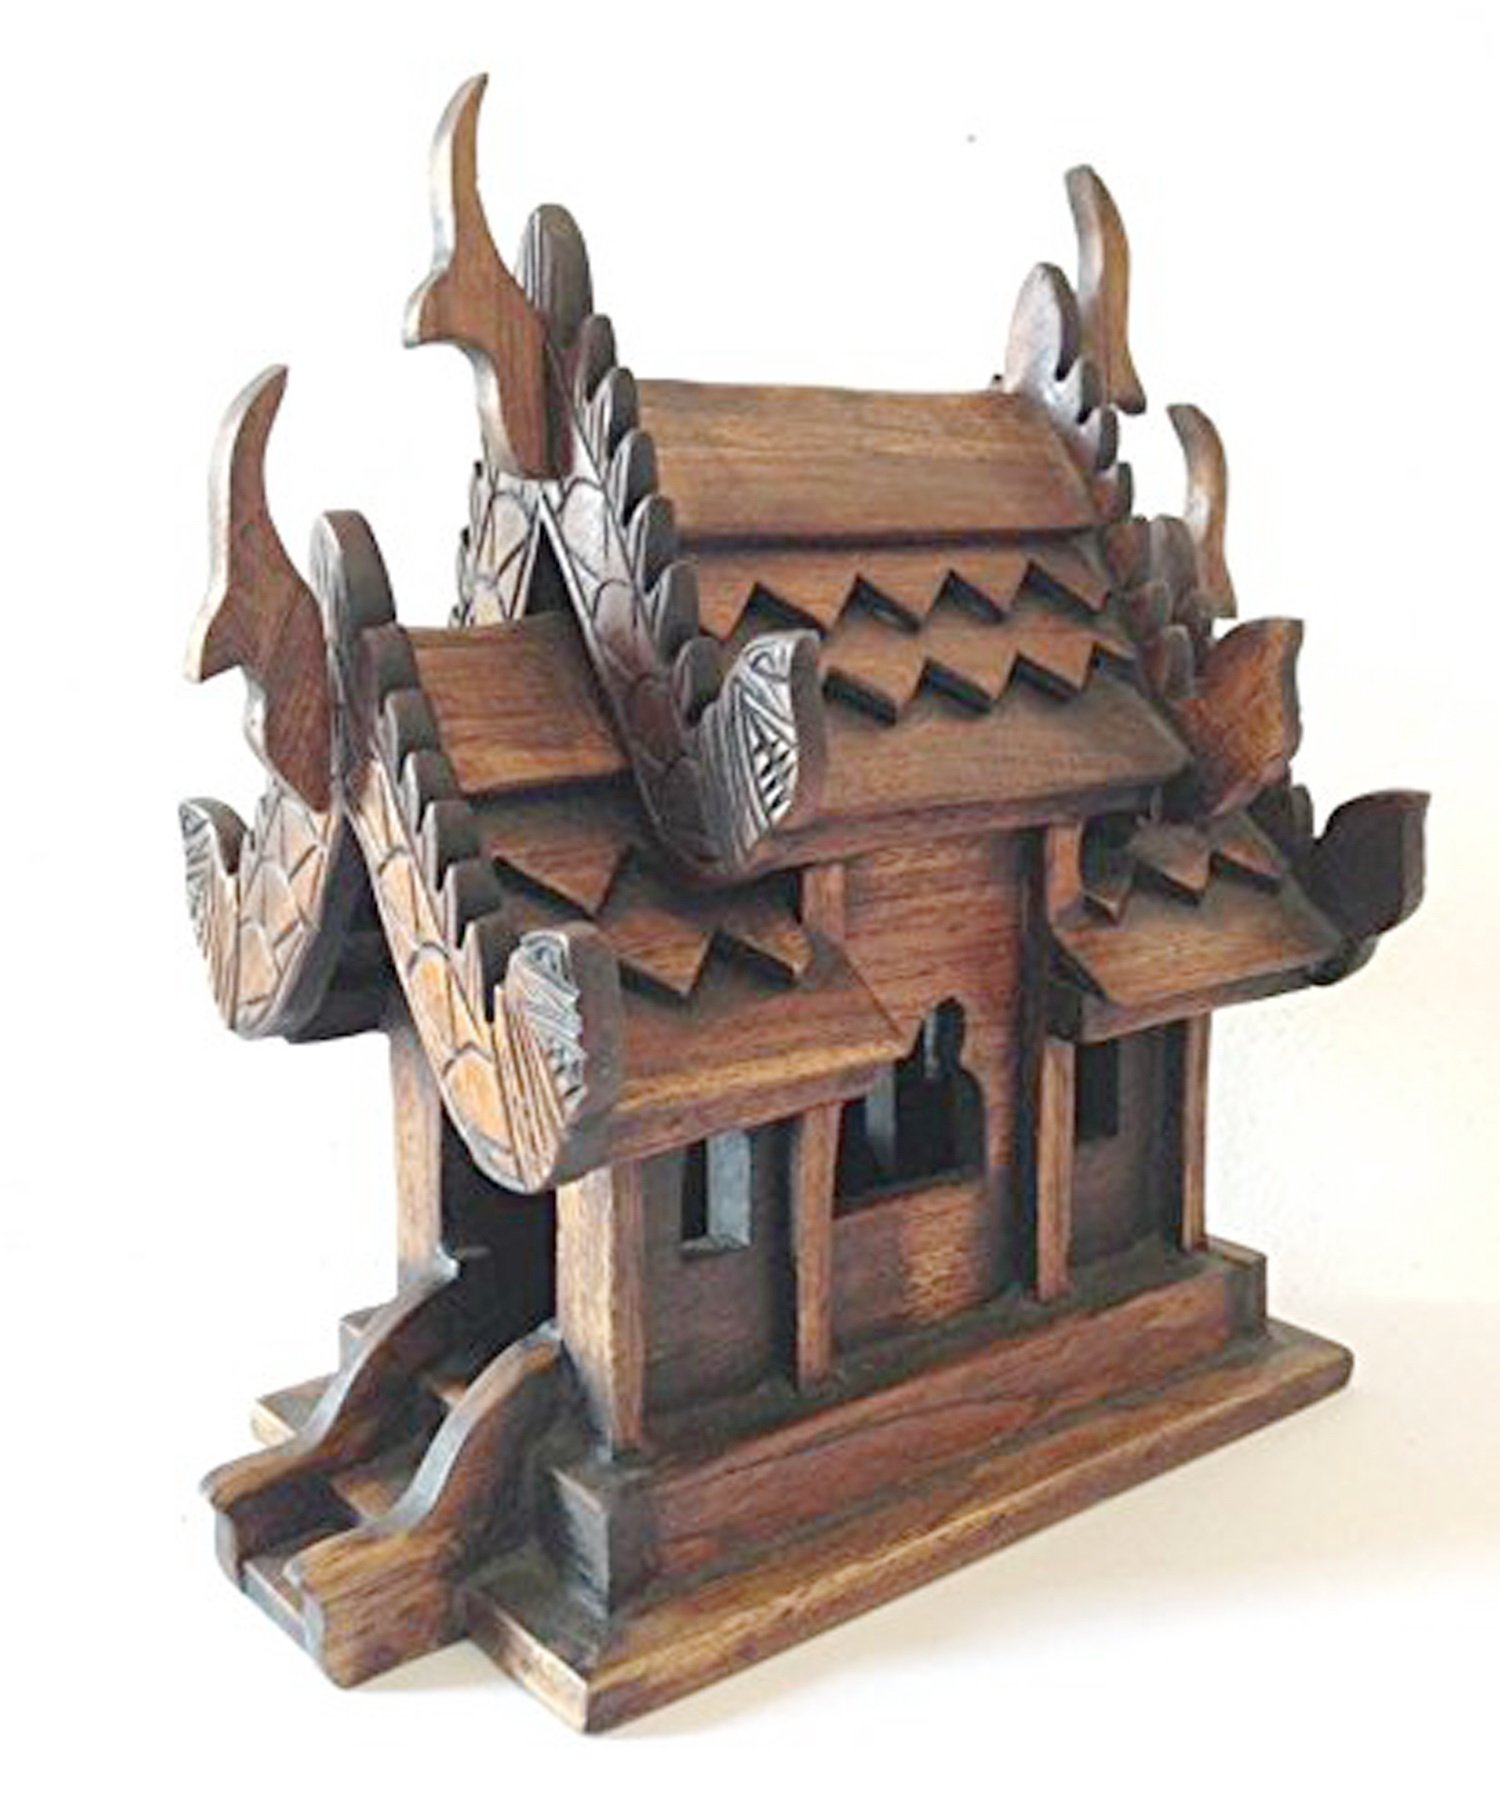 Thai Spirit House SMALL9 Sanpraphum Thai Handmade Spirit House Teak Wood Decoration Garden, by Thai Spirit House